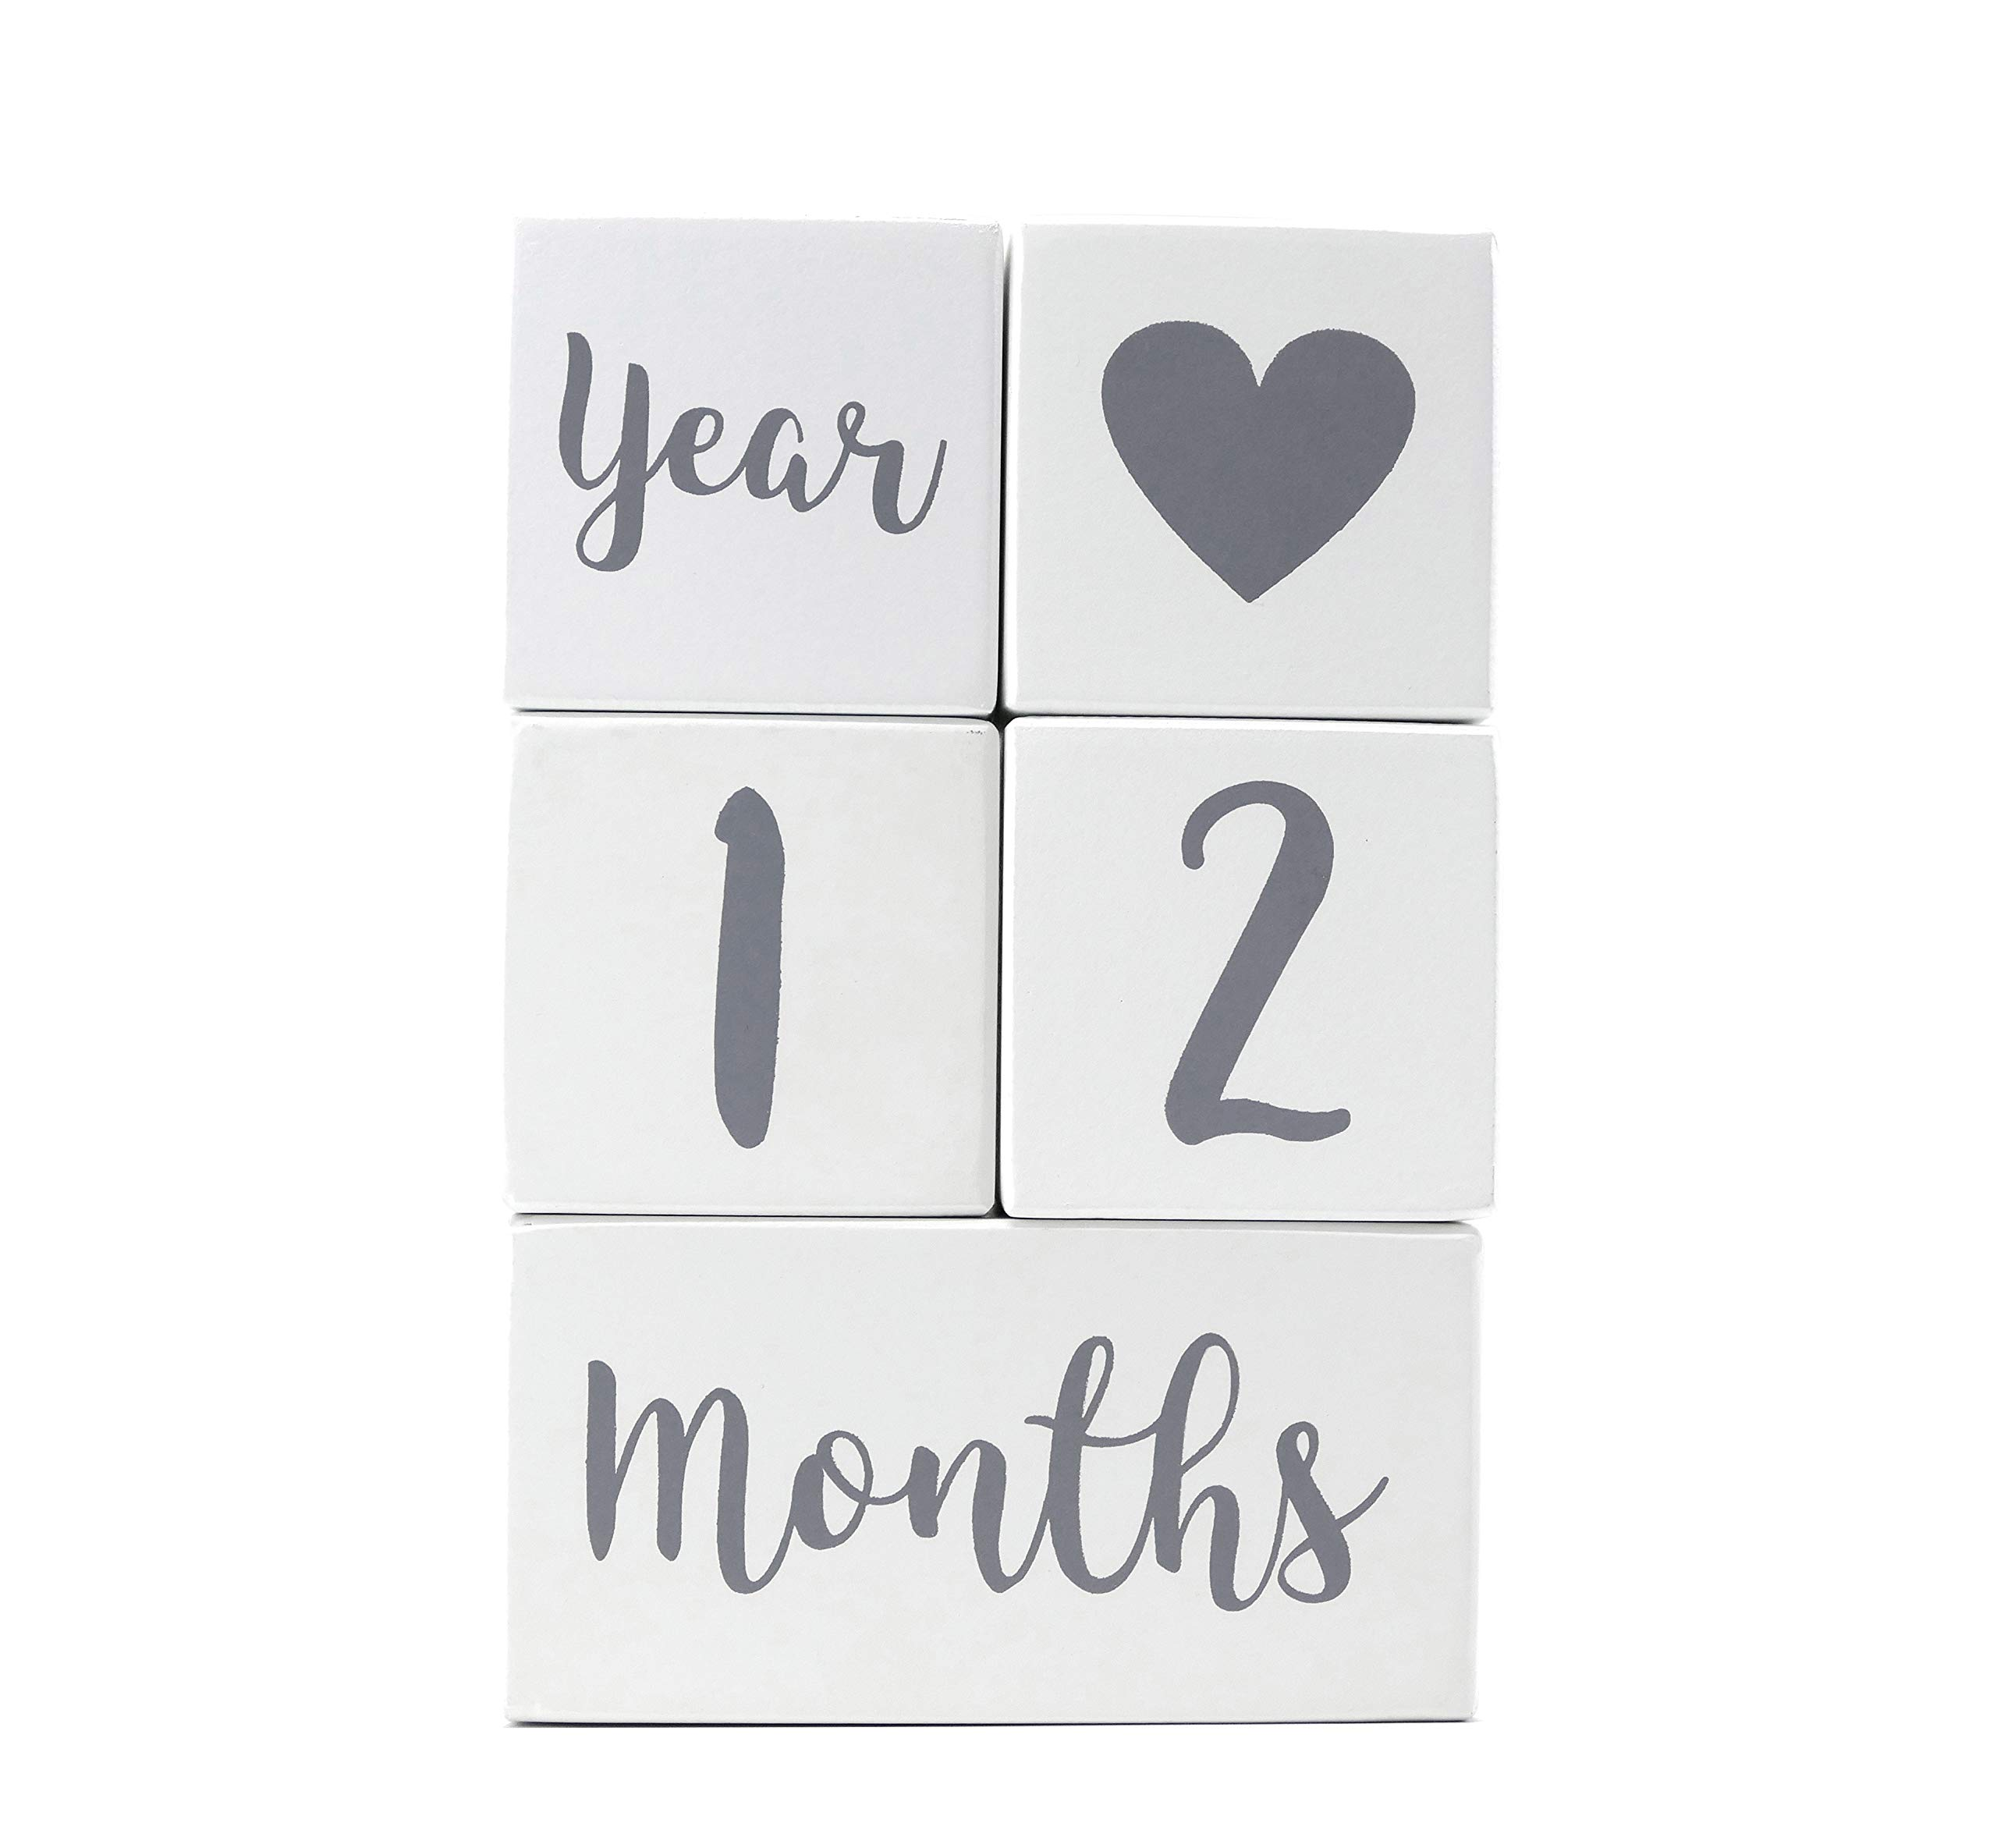 Baby Milestone Blocks   Pregnancy Baby Newborn Toddler Weekly Monthly Yearly Age   Premium Solid Wood Boys Girls Photo Props   Perfect Baby Shower Gift   Gender Neutral Keepsake for Photo Sharing by Baby Swagg